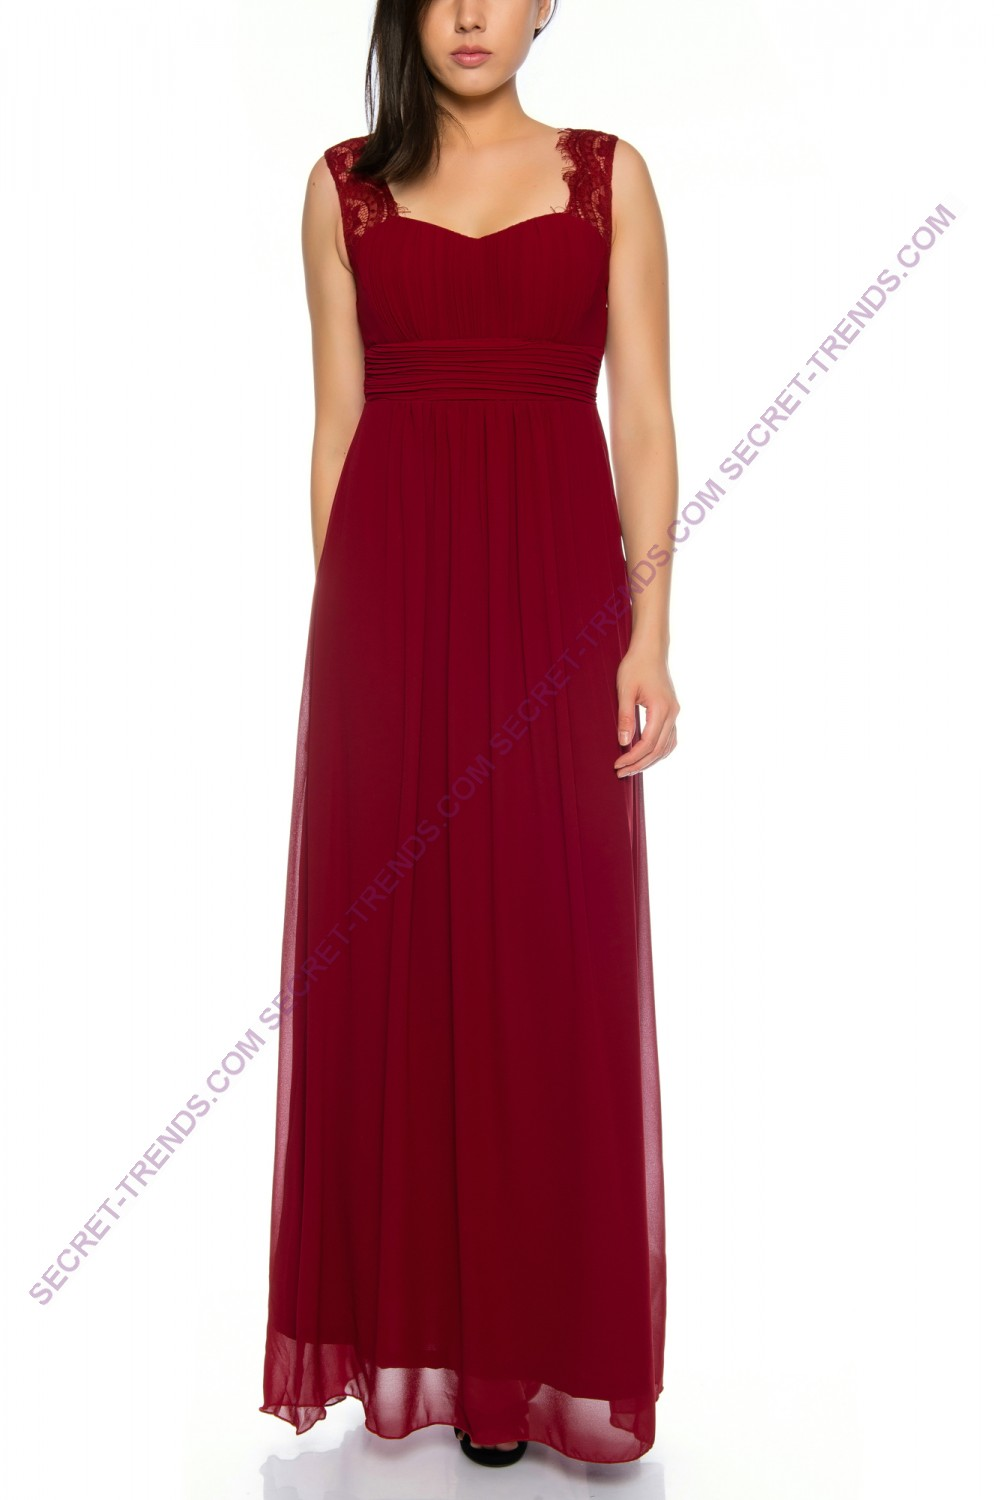 Beautiful evening dress / Maxikleid with straps made of light R8080